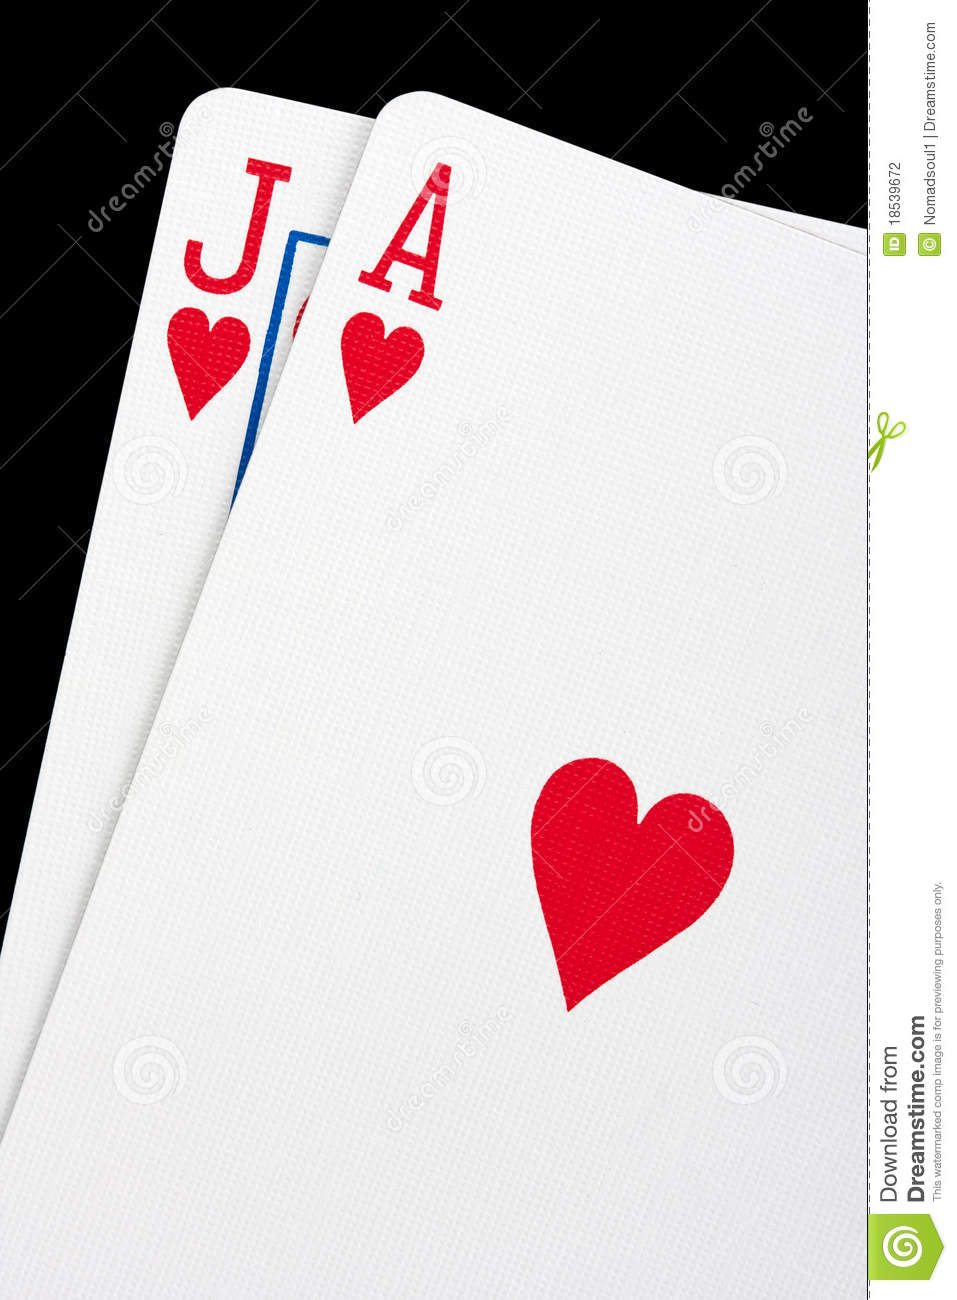 In blackjack are both cards face up